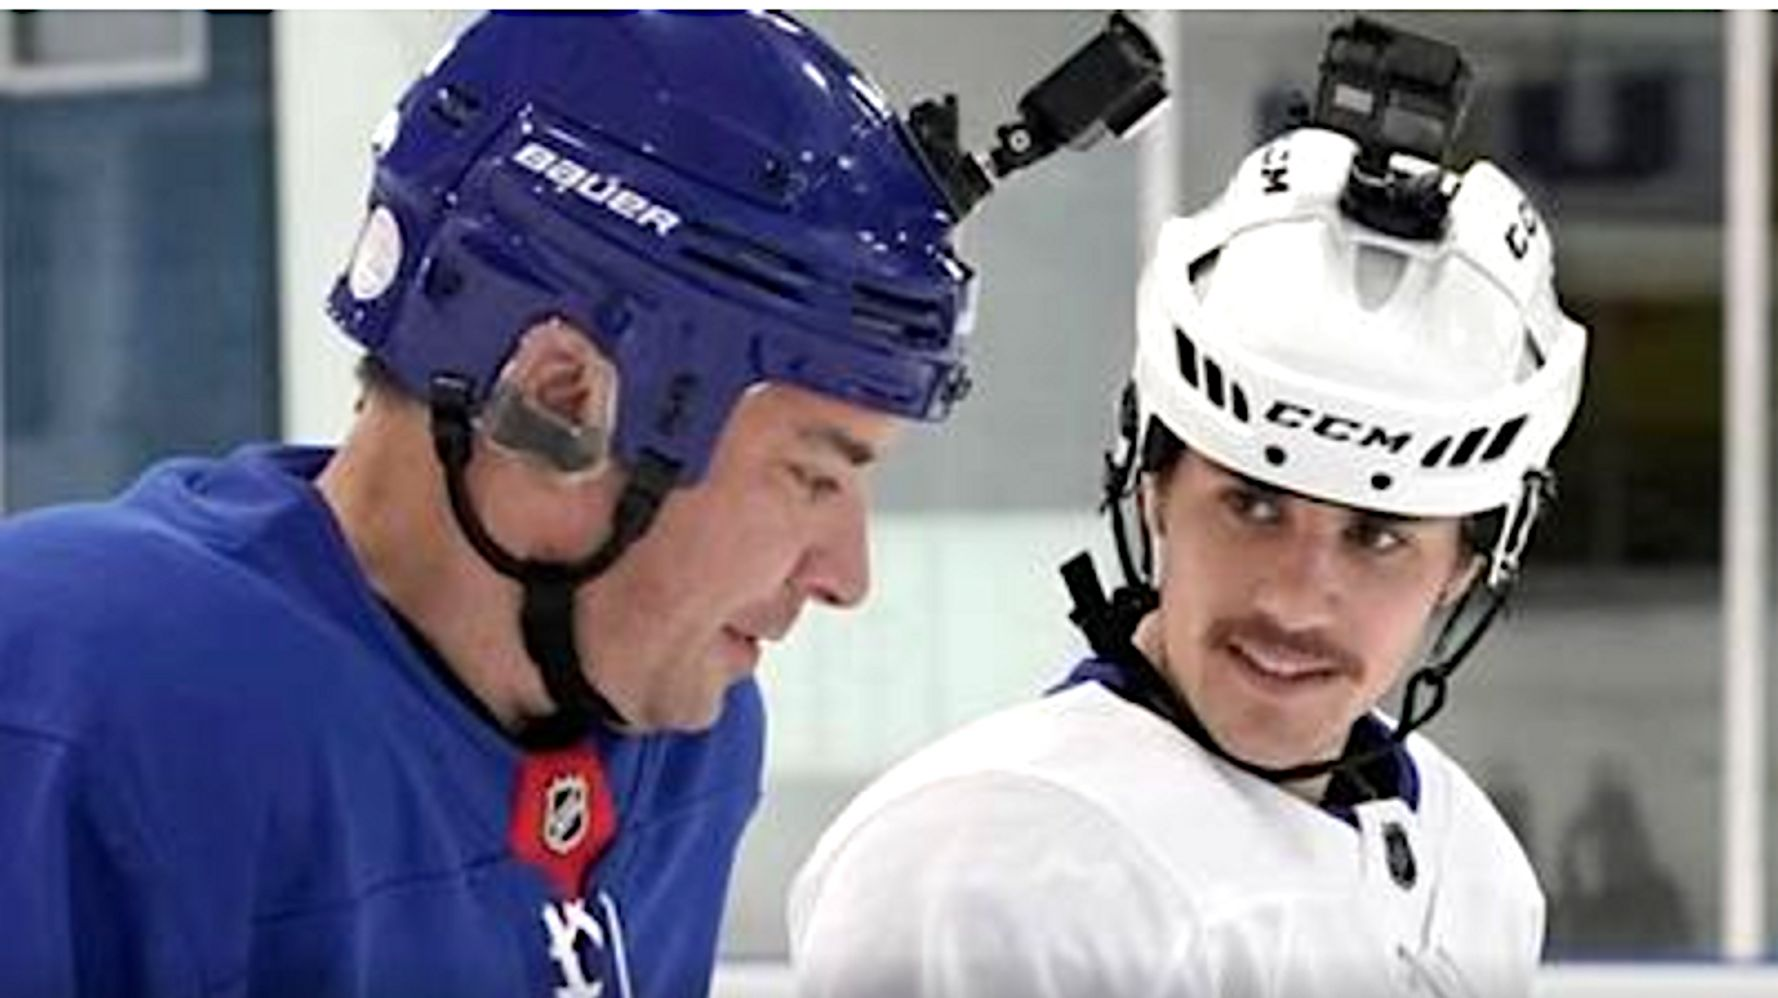 Justin Bieber Teaches Hockey To Jimmy Fallon. It Doesn't Go Well.